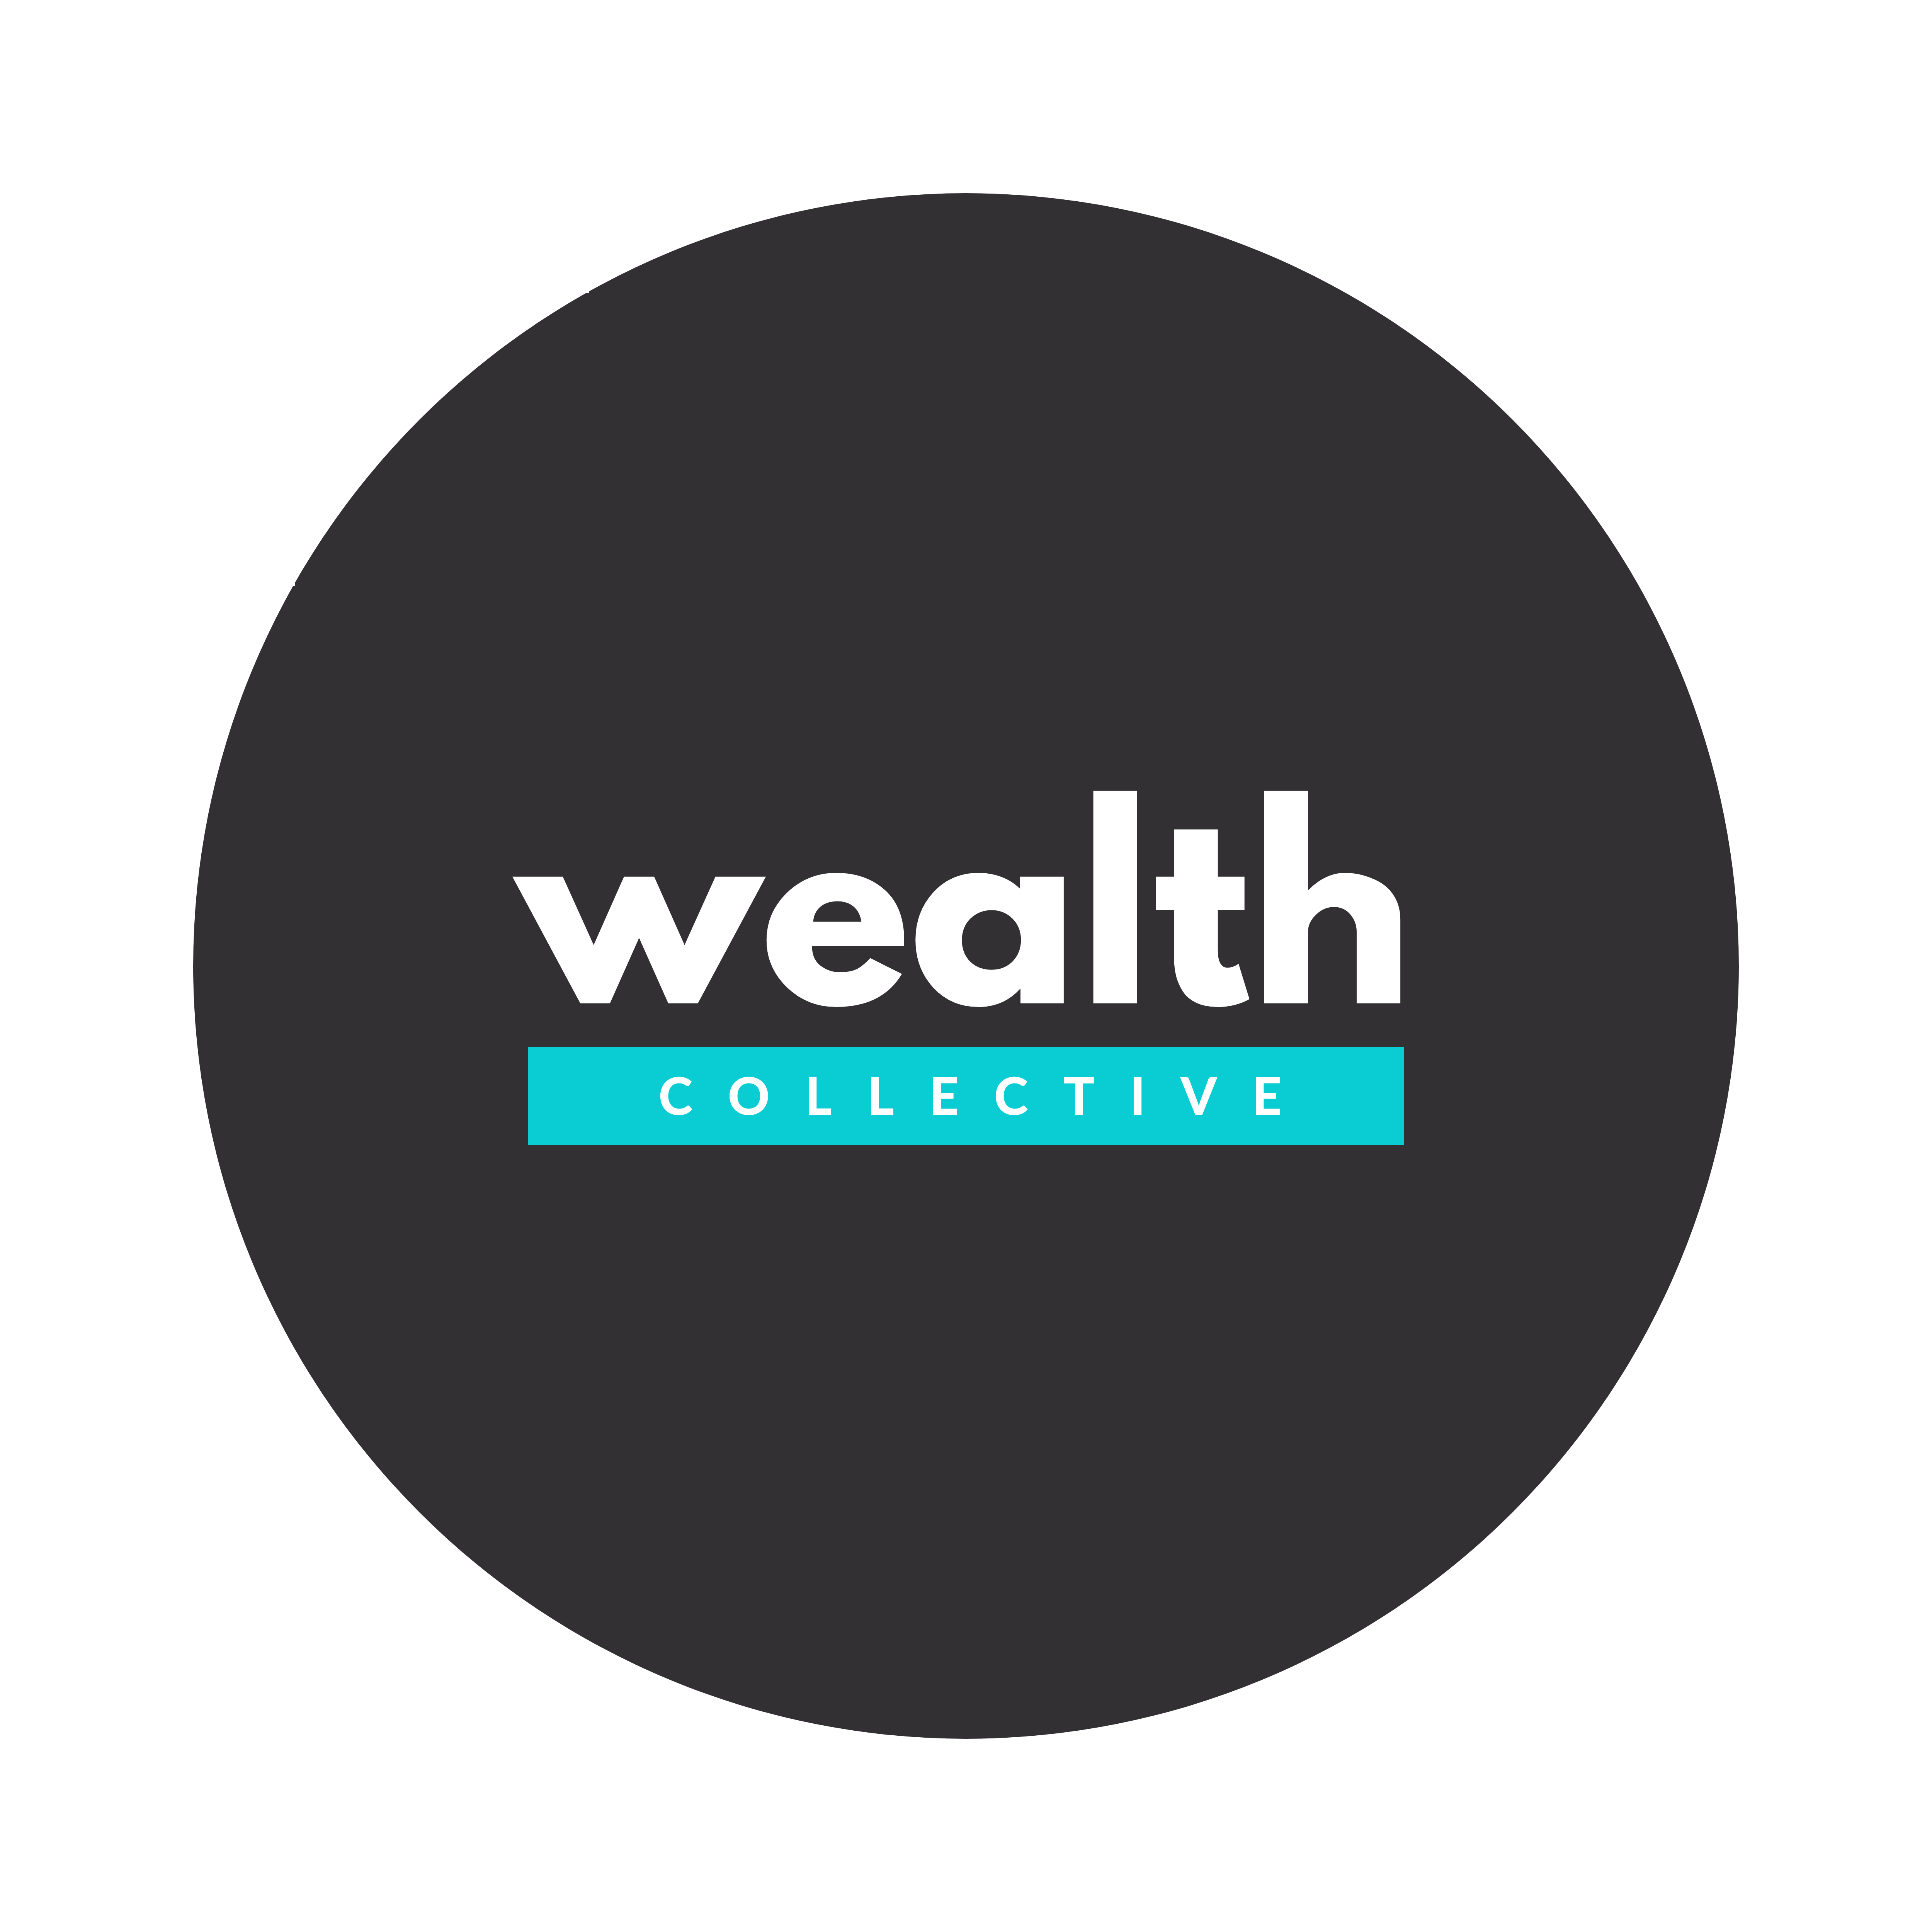 Wealth Collective